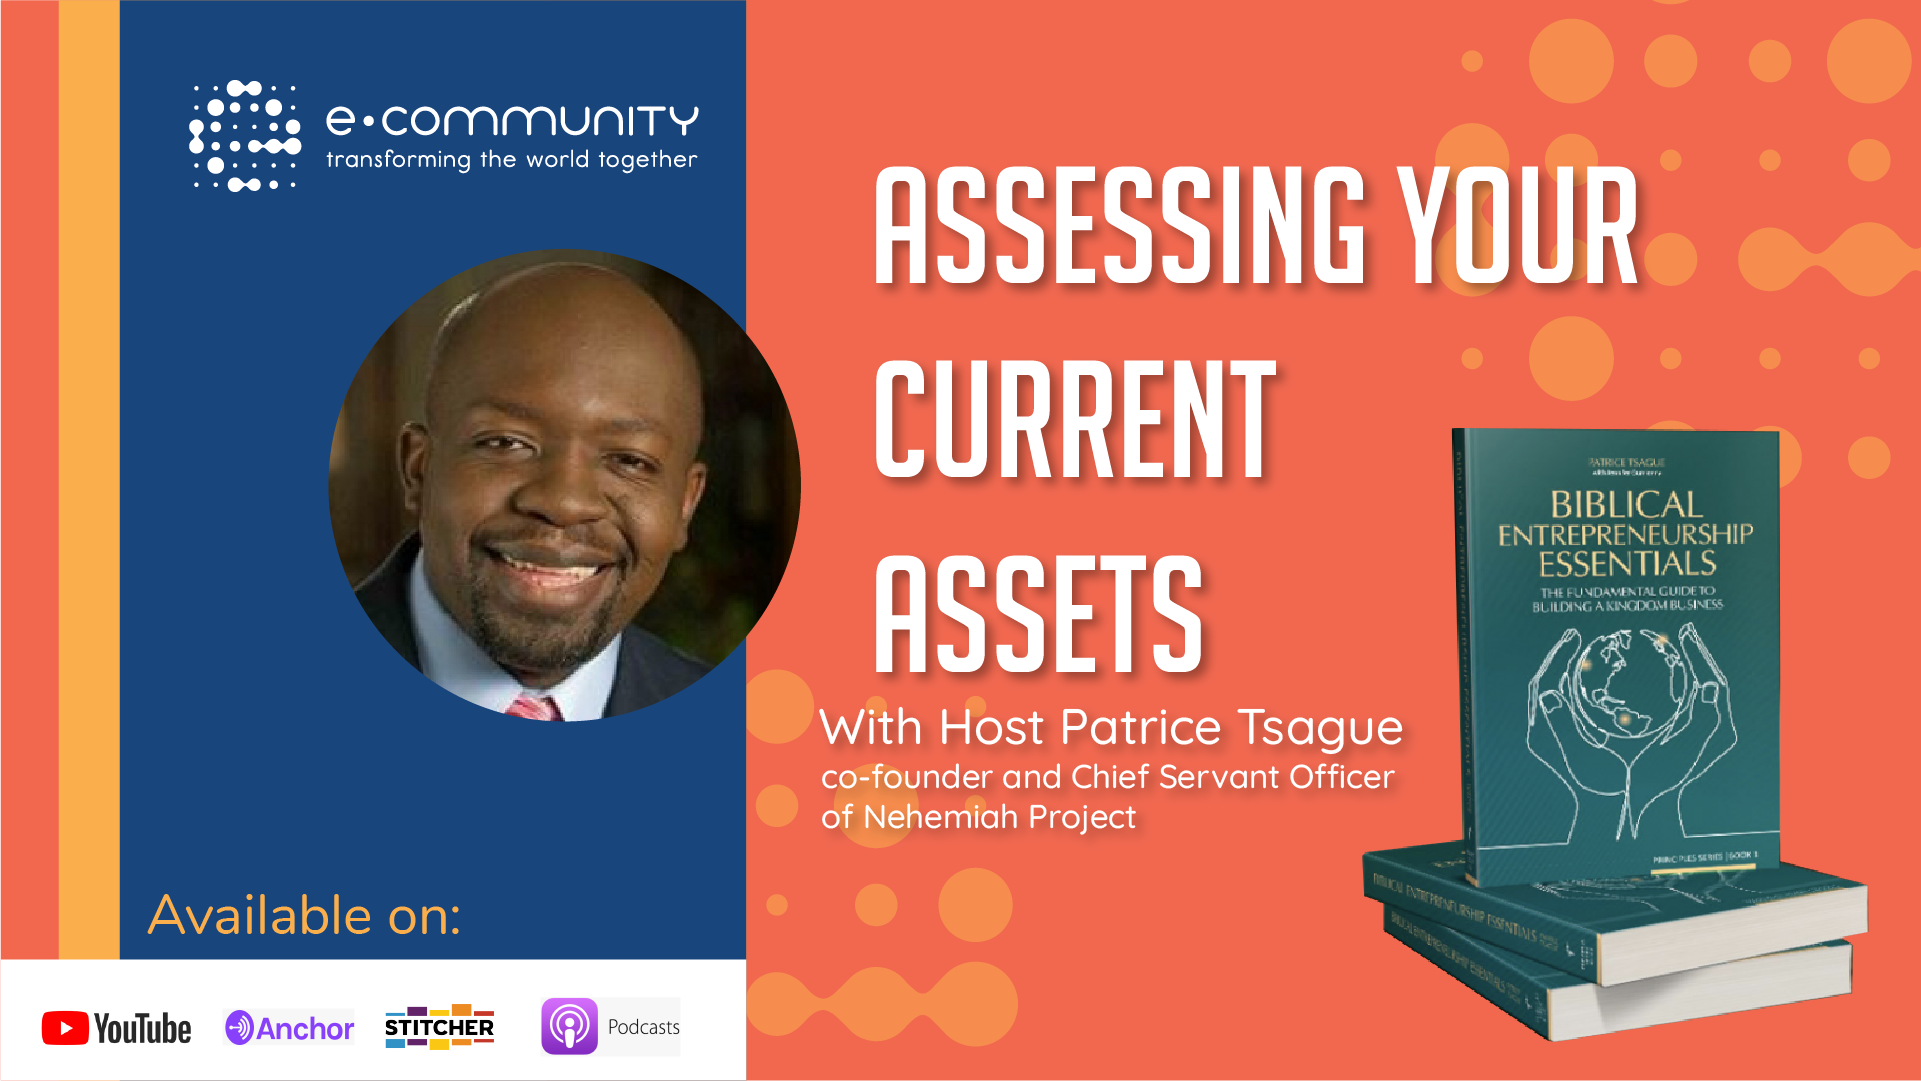 Assessing Your Current Assets